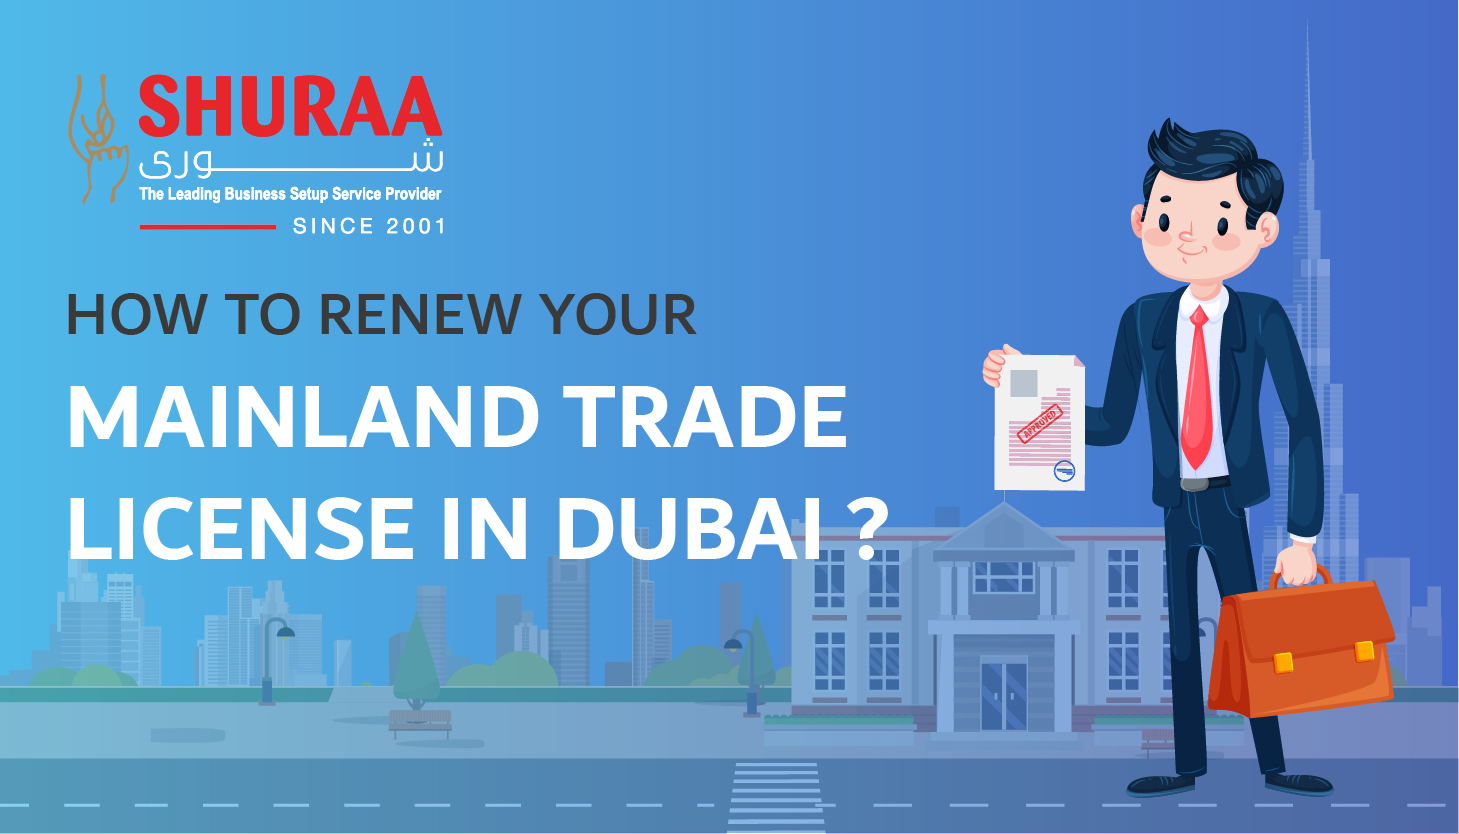 How to renew your mainland trade license in Dubai?